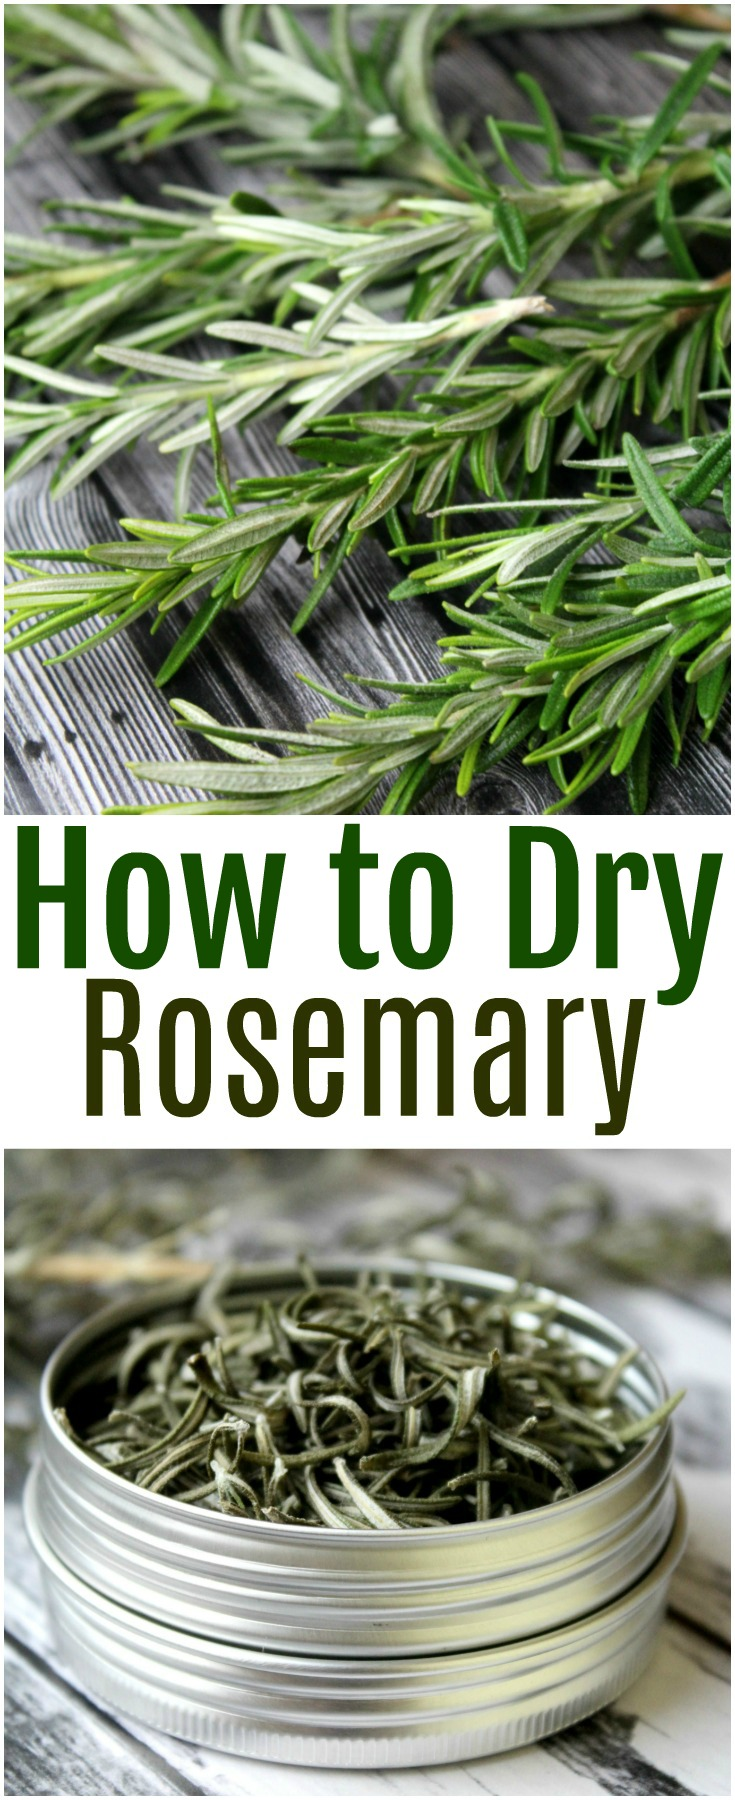 Learn how to dry rosemary in three easy methods - baking in the oven, air drying and using a dehydrator. Keep your rosemary fresh for a very long time.   #rosemary #herbs #foodpreservation #dehydrate #foodprep